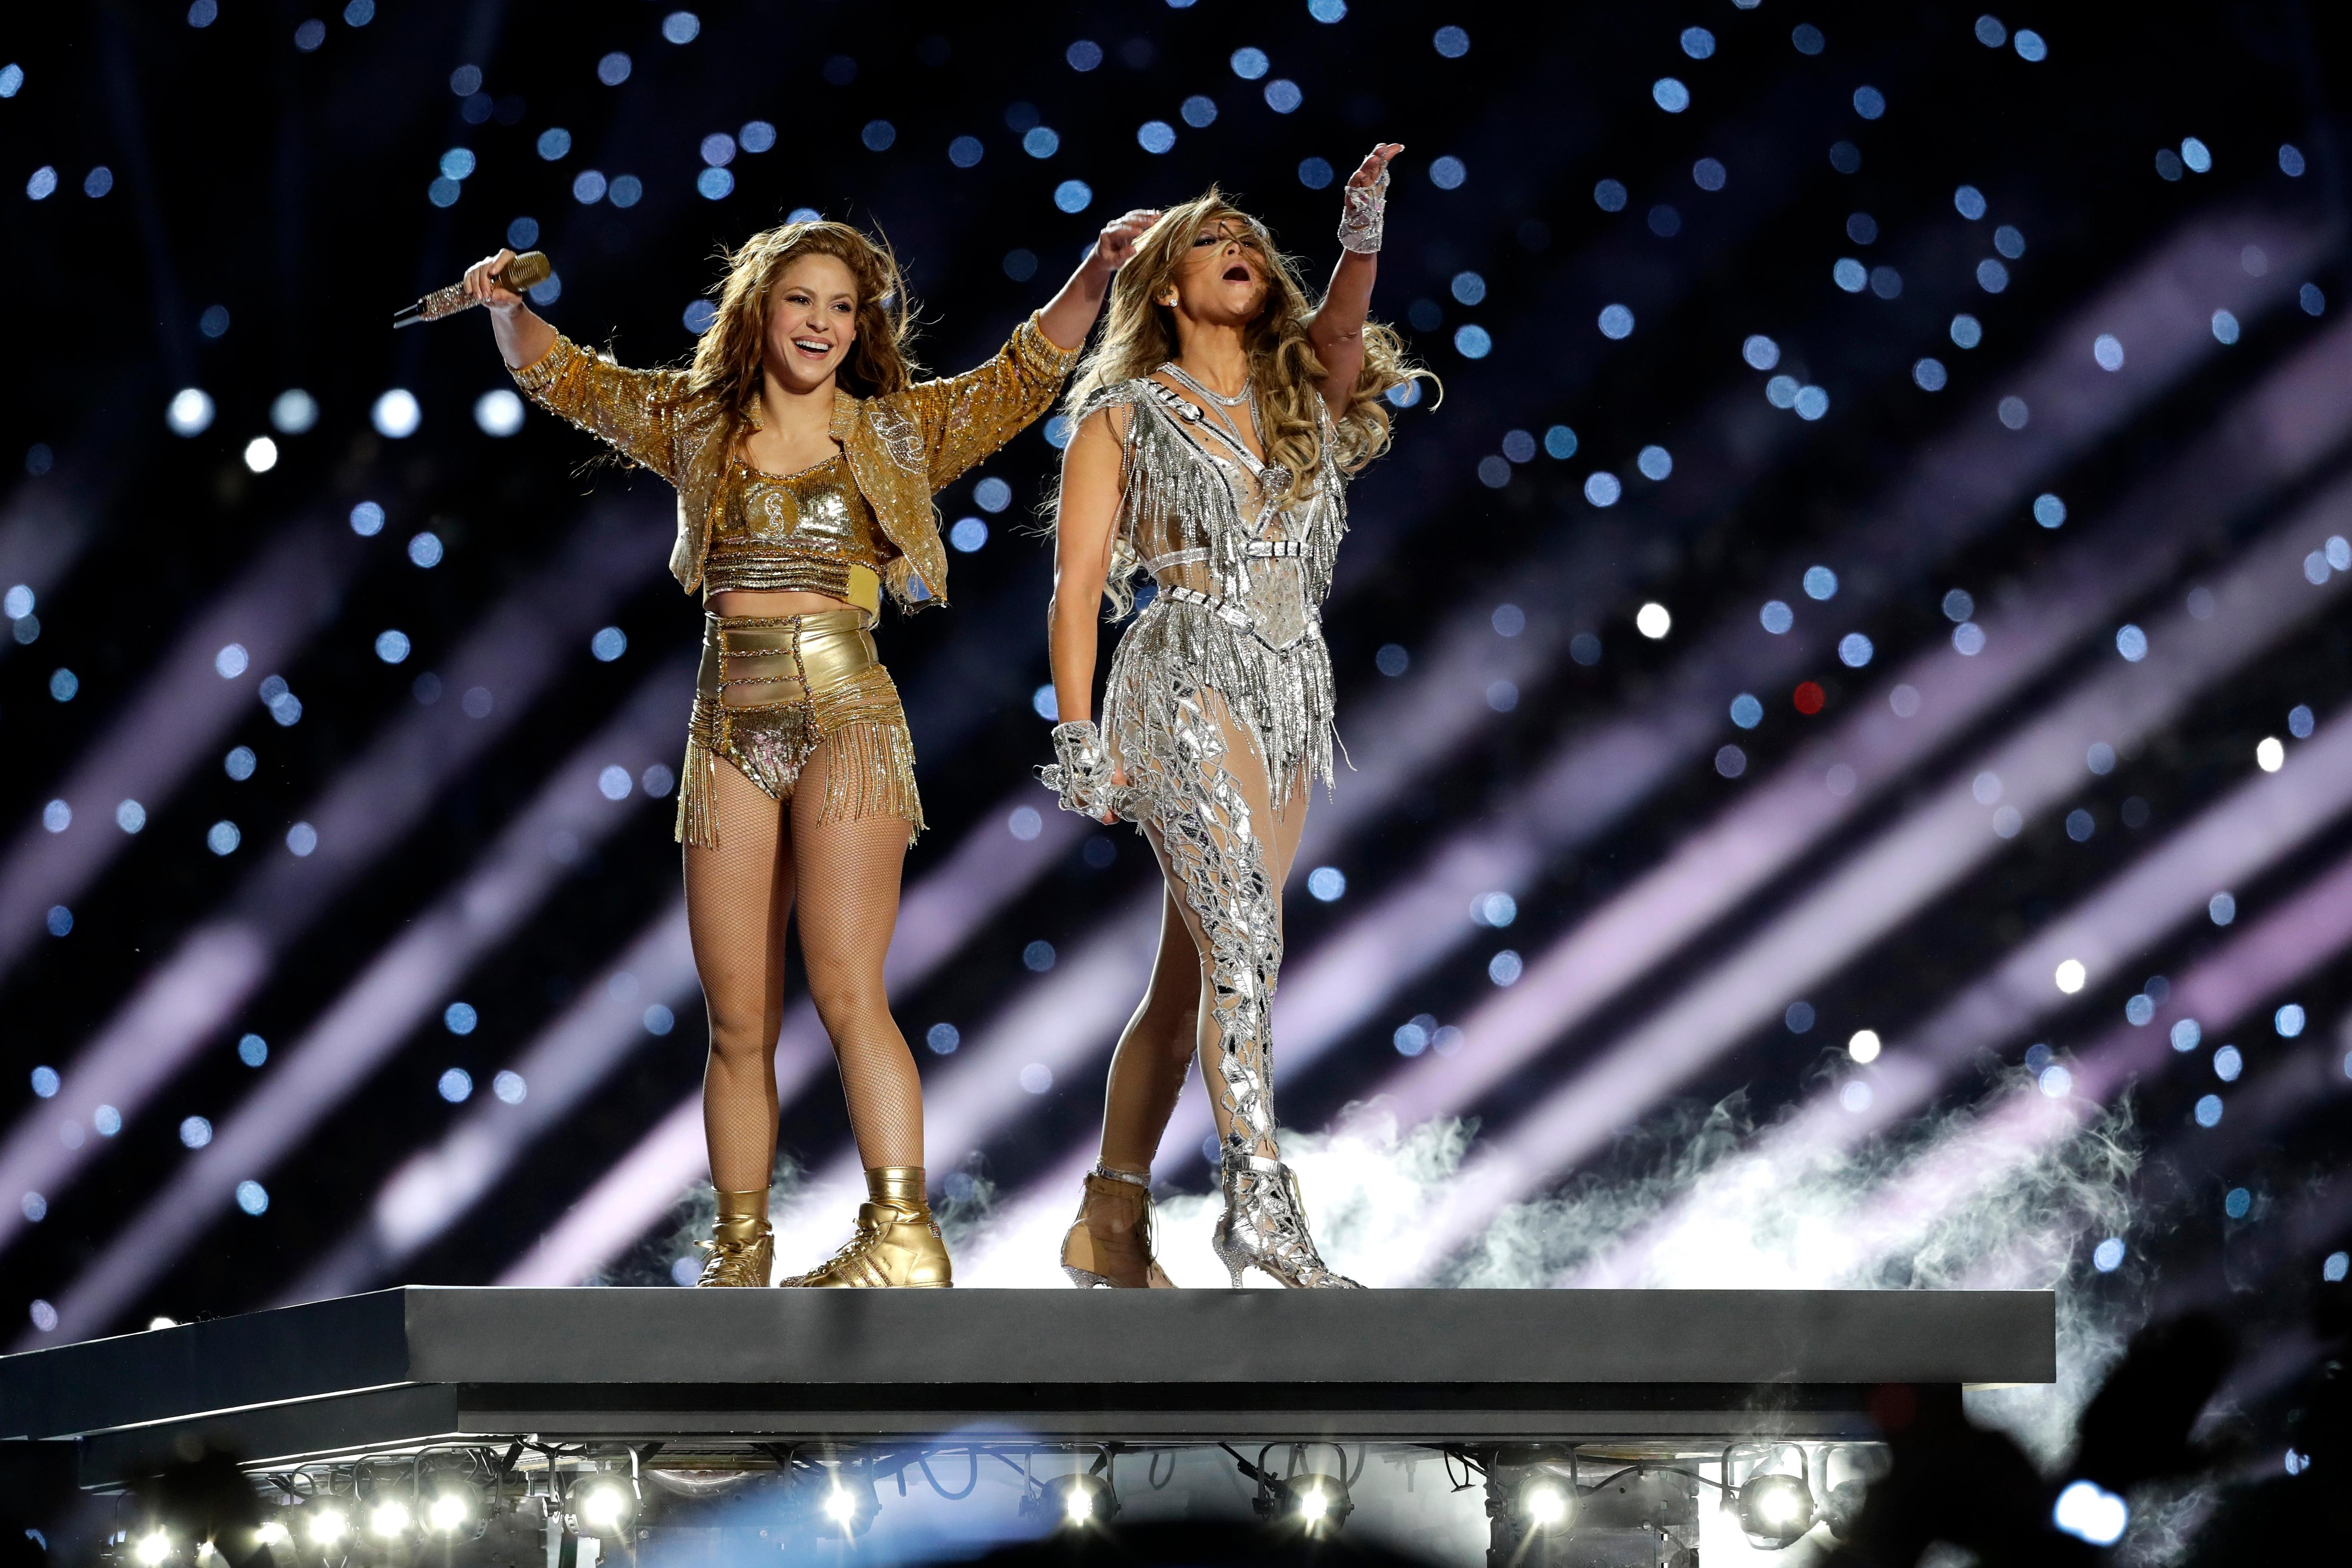 Shakira and Jennifer Lopez perform during halftime of the NFL Super Bowl 54 football game between the Kansas City Chiefs and the San Francisco 49ers Sunday, Feb. 2, 2020, in Miami Gardens, Fla. (AP Photo/Seth Wenig)